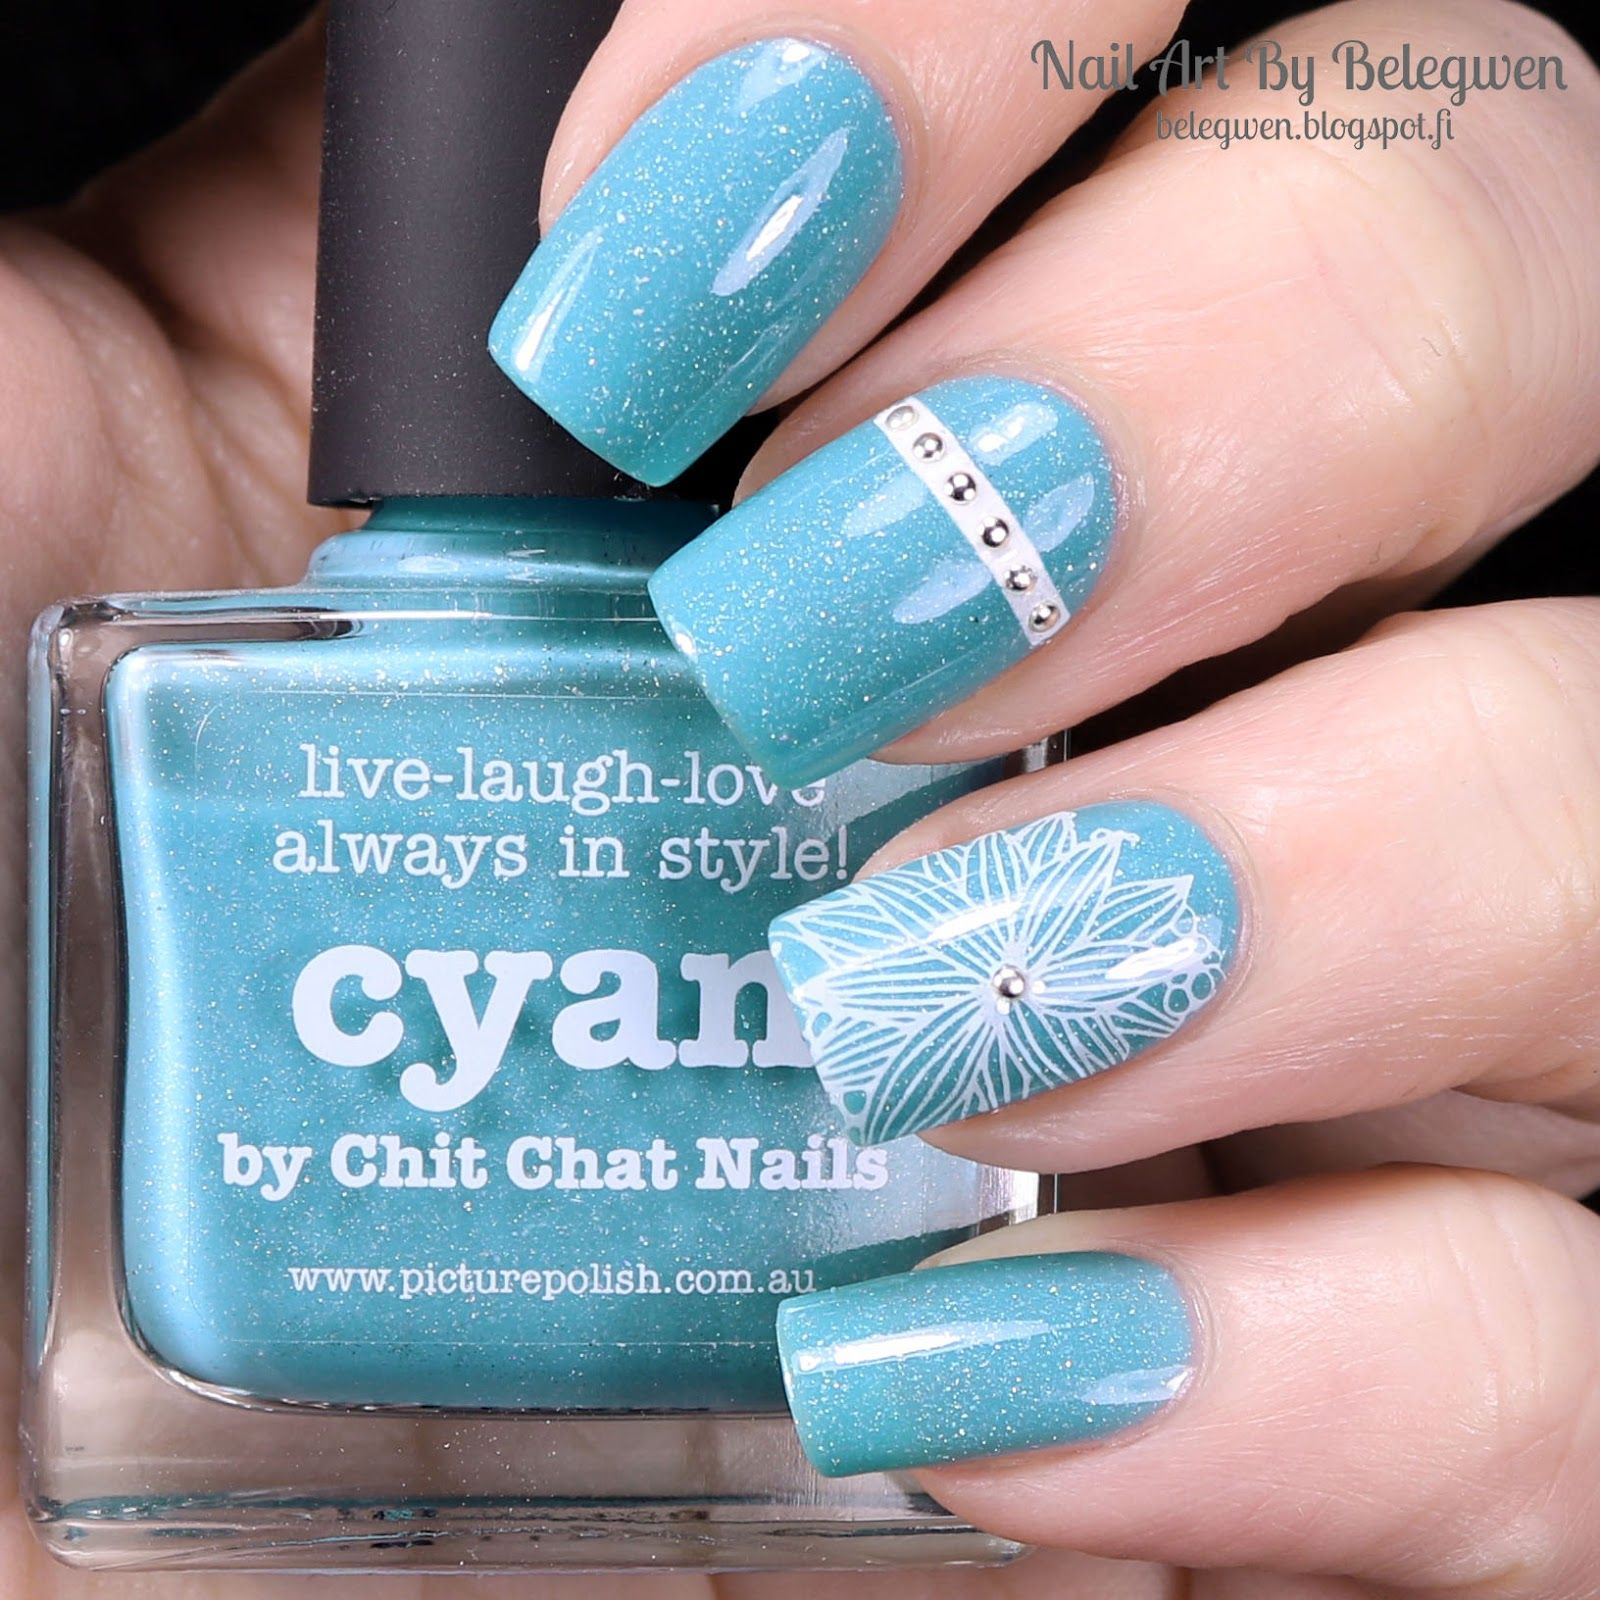 Nail Art by Belegwen: Picture Polish Cyan